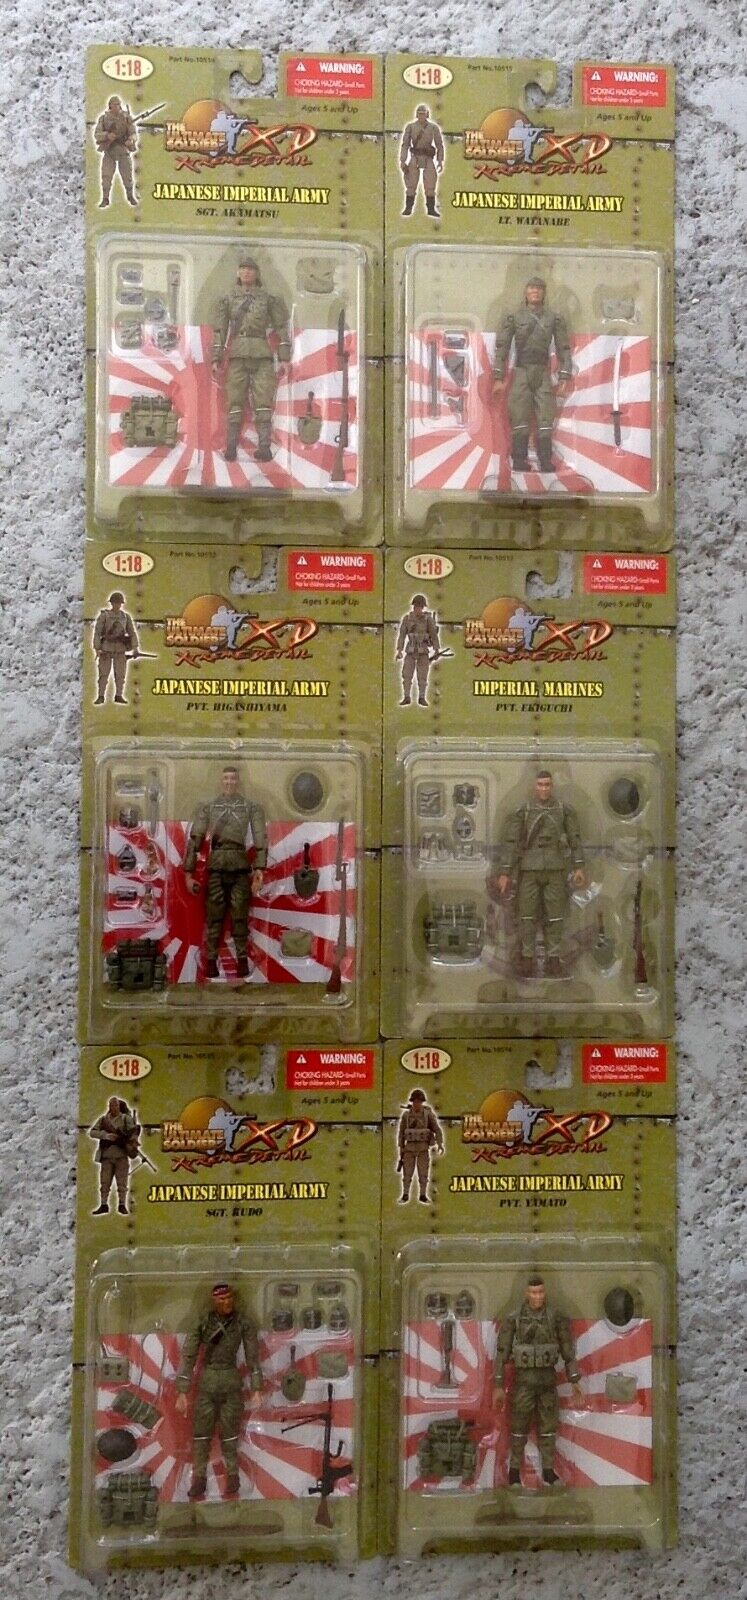 ULTIMATE SOLDIER 118 XTREME DETAIL SET OF 6 JAPANESE IMPERIAL ARMY MOC